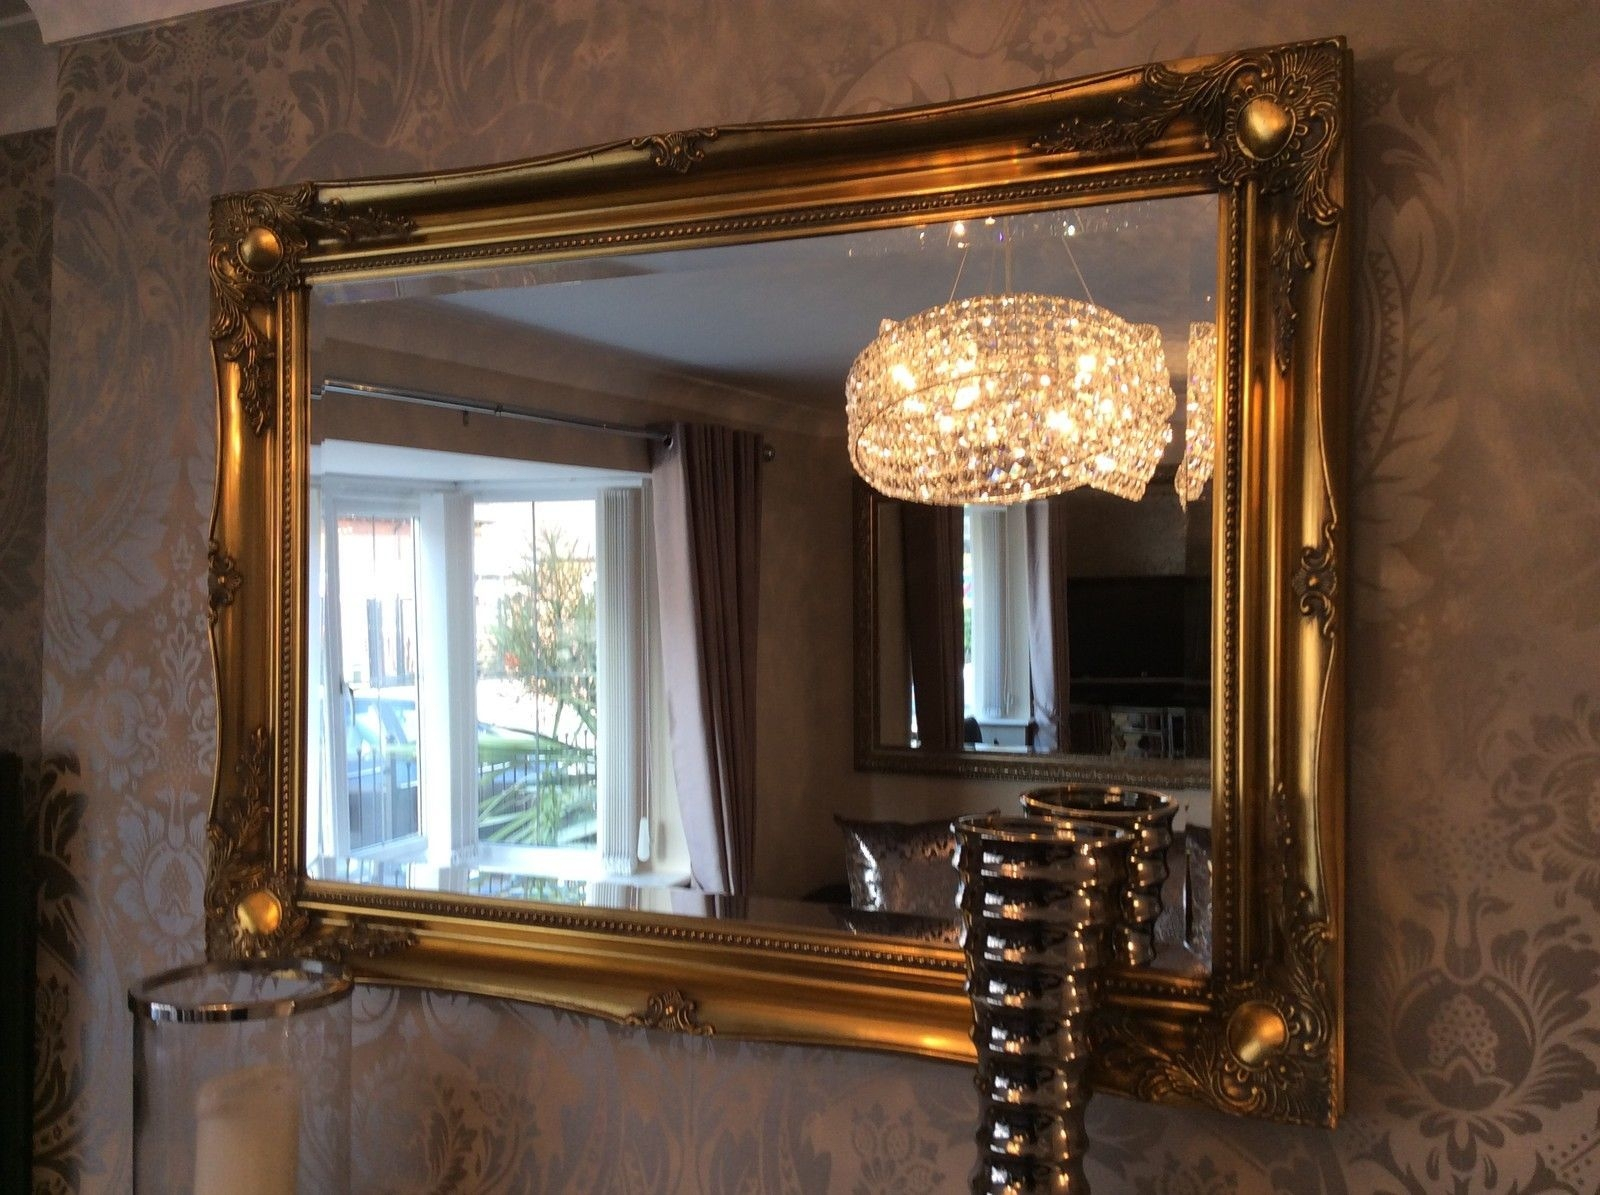 Antique Wall Mirrors Decorative Inarace Intended For Big Gold Mirror (Image 1 of 15)